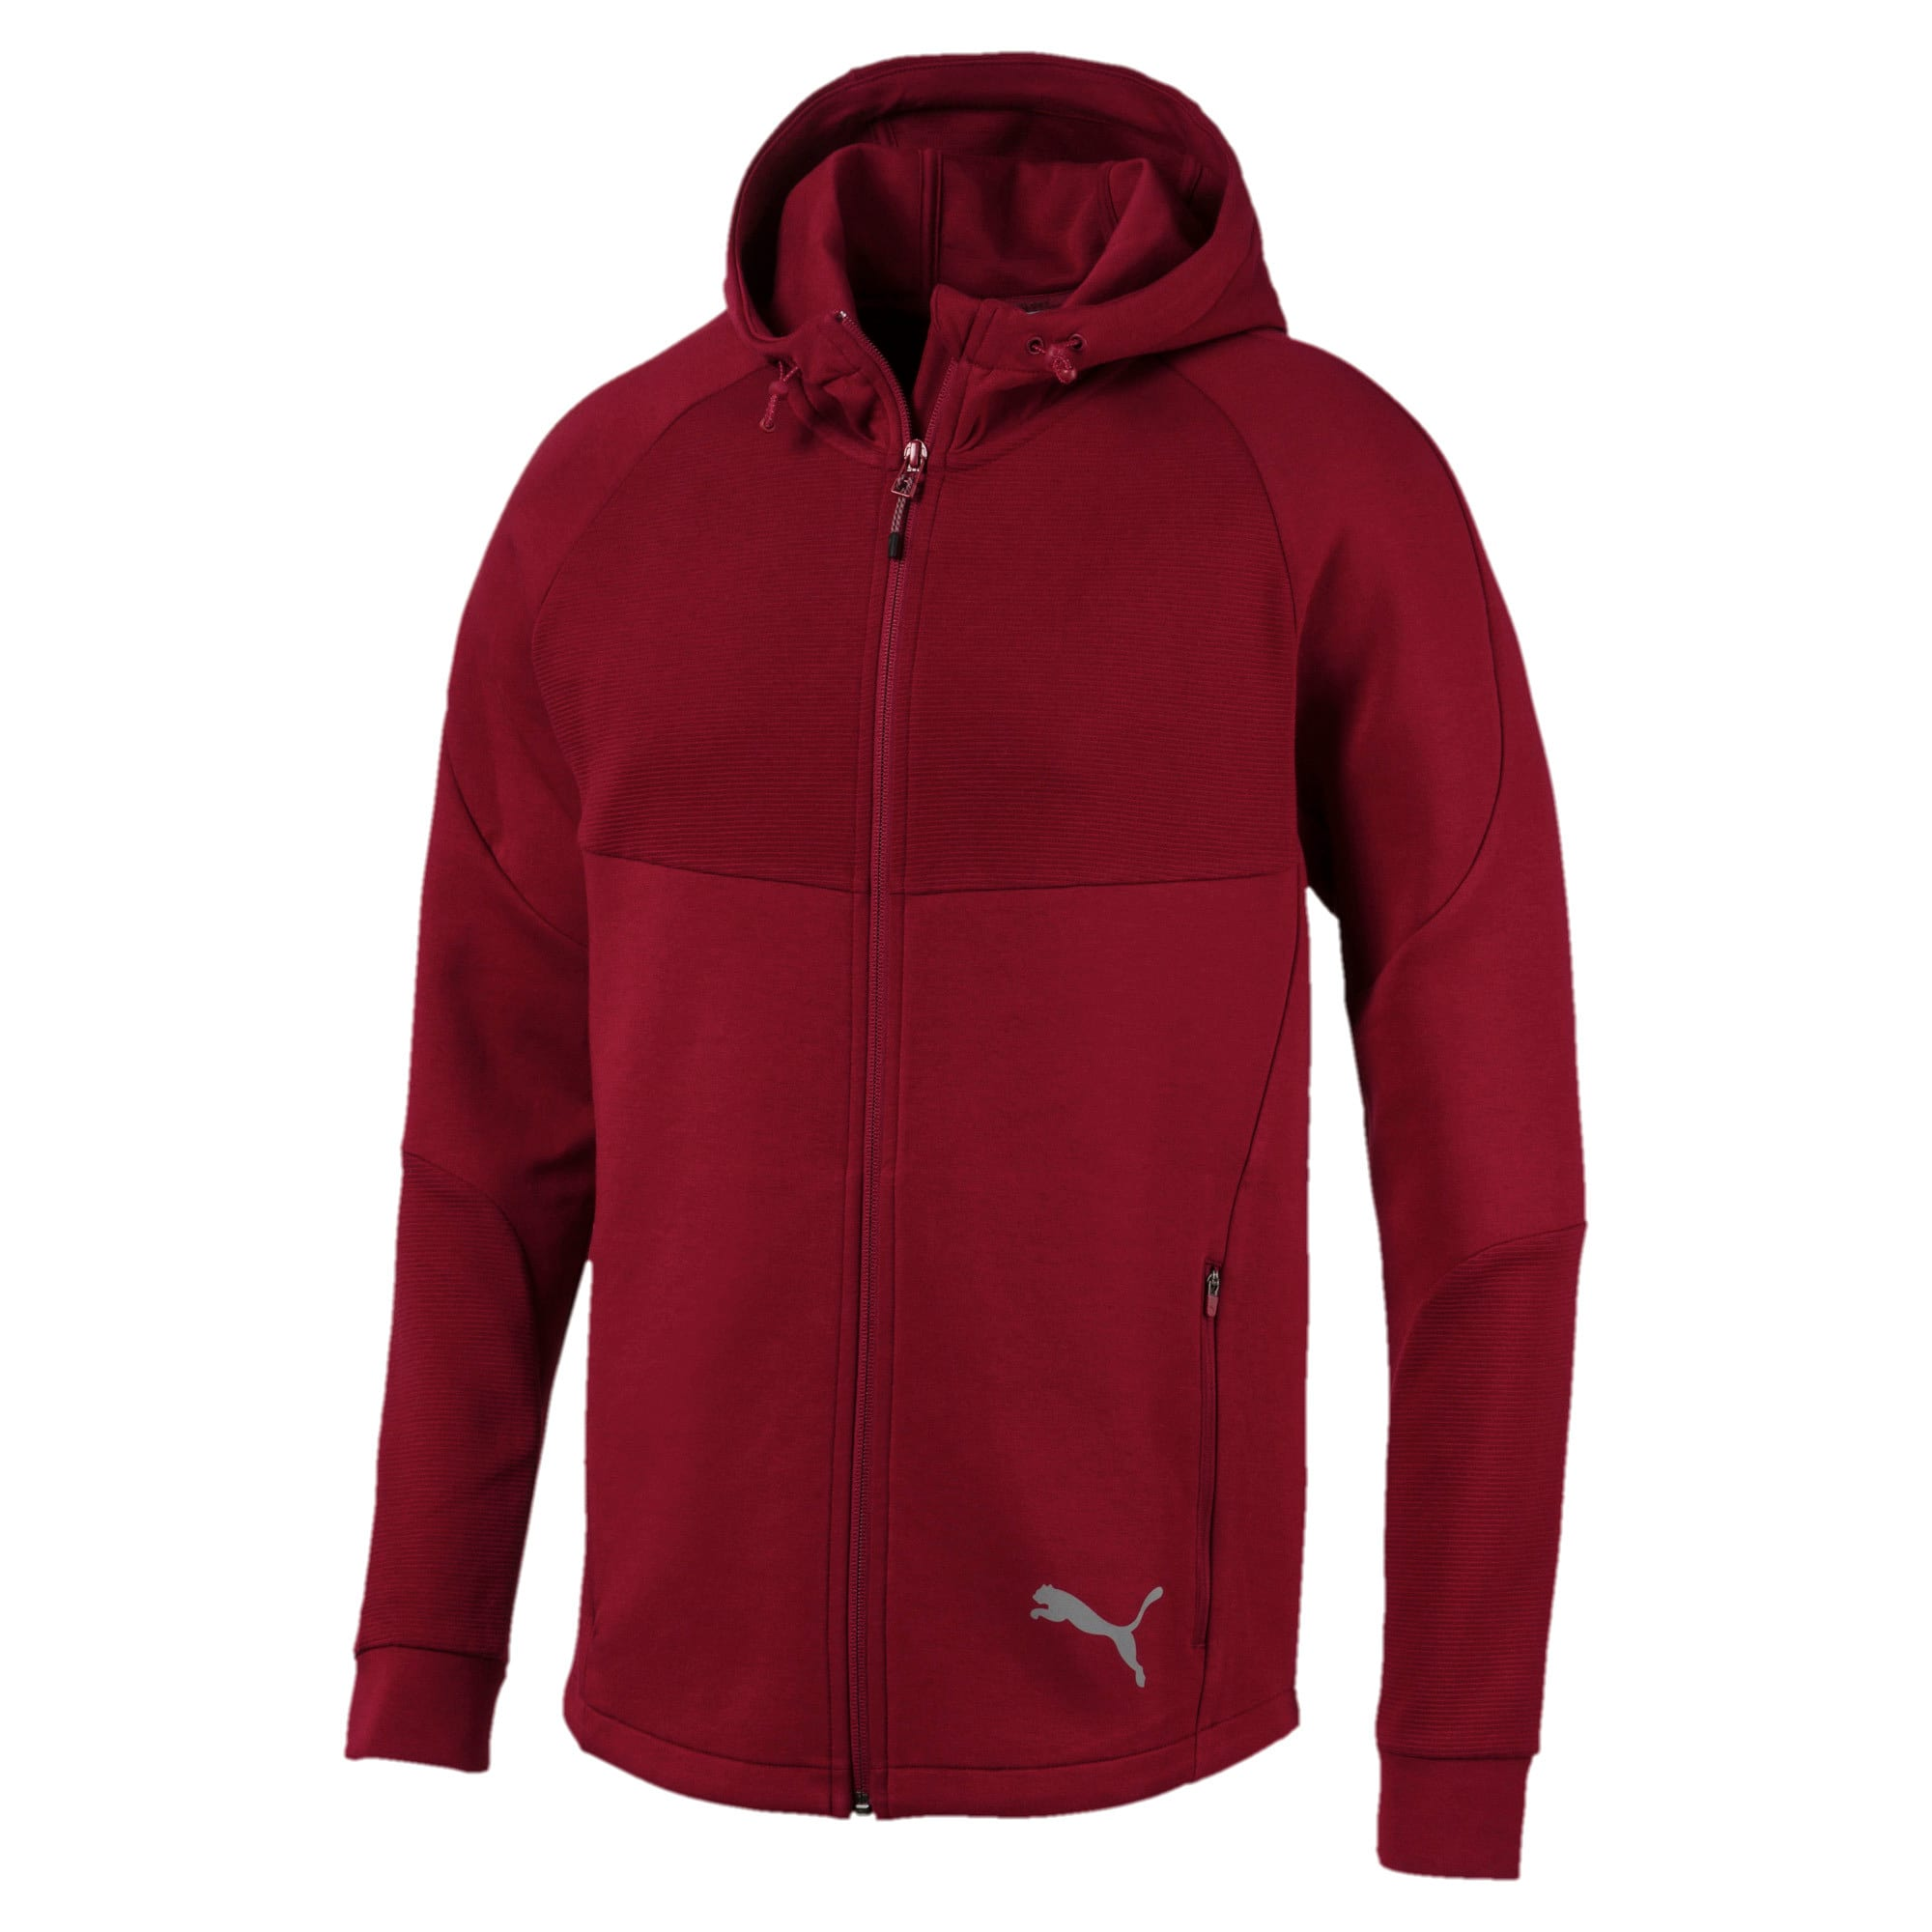 Thumbnail 4 of Evostripe Men's Full Zip Hoodie, Rhubarb, medium